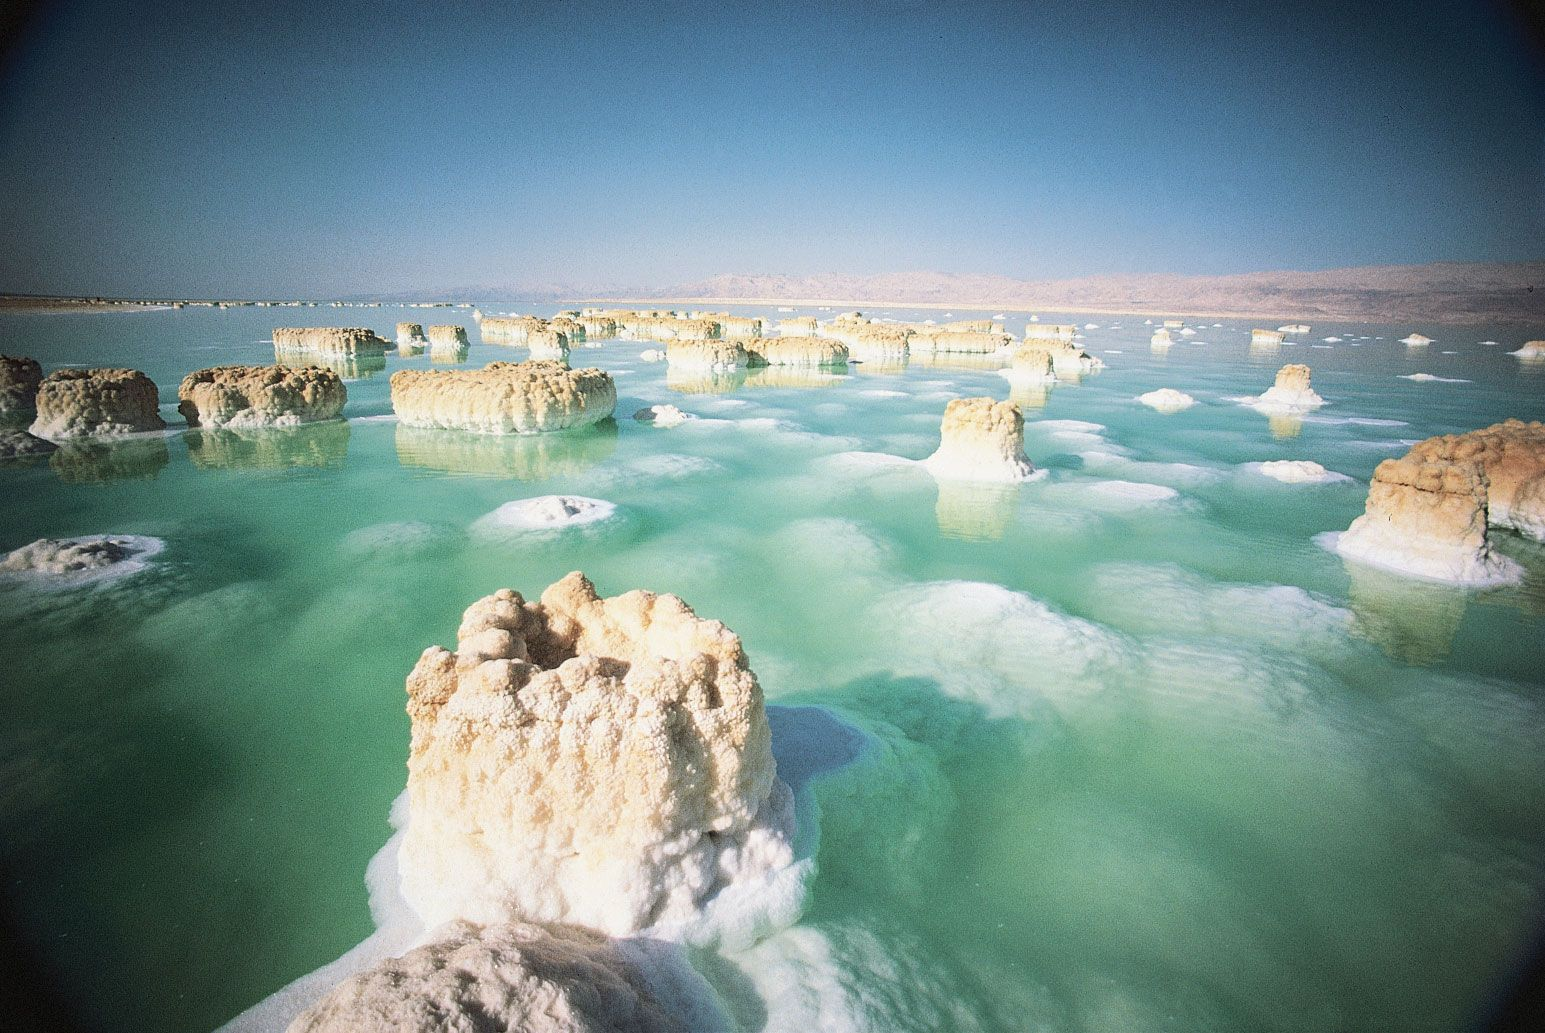 salt formations in the dead sea.